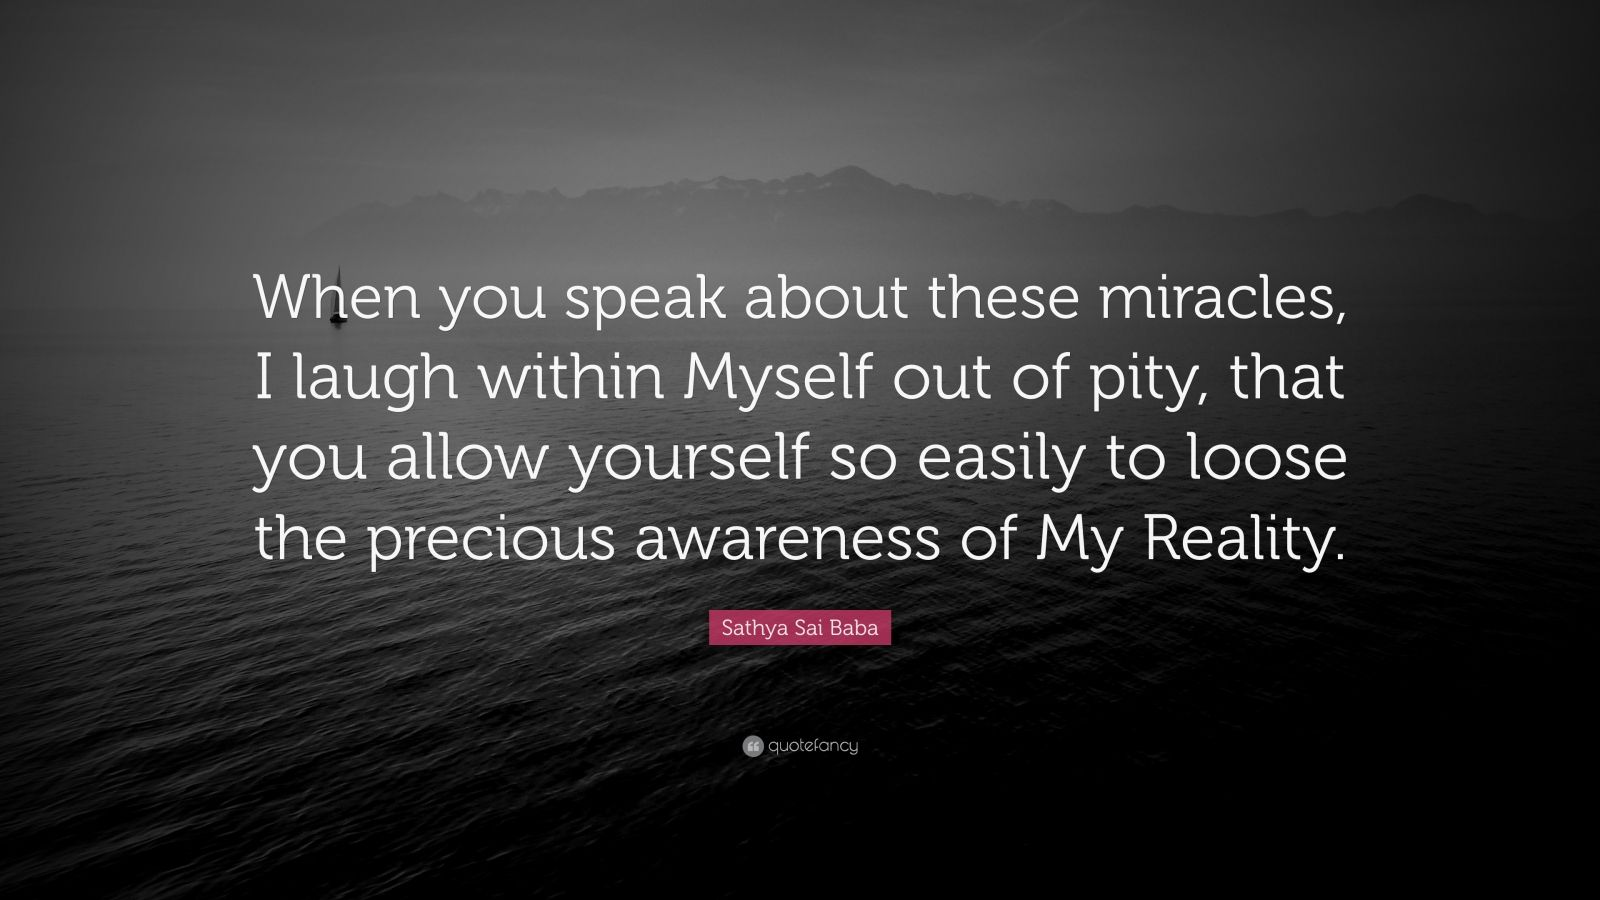 """Sathya Sai Baba Quote: """"When you speak about these miracles, I laugh within Myself out of pity, that you allow yourself so easily to loose the precious awareness of My Reality."""""""